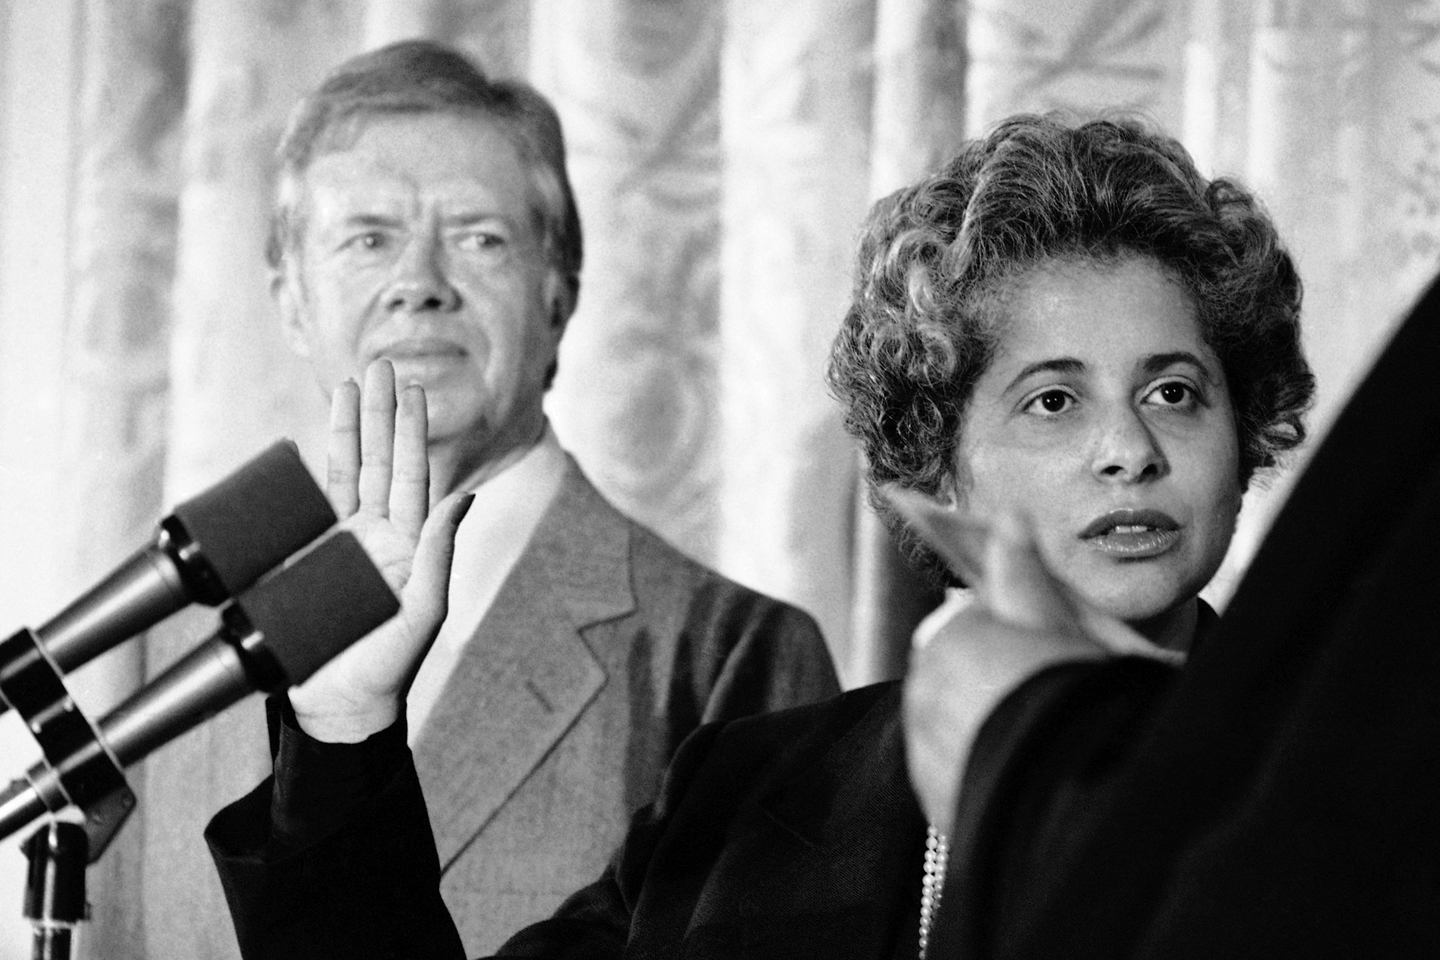 U.S. President Jimmy Carter watches as Patricia Roberts Harris is sworn in Washington, Friday, August 3, 1979 as Secretary of Health, Education Welfare.